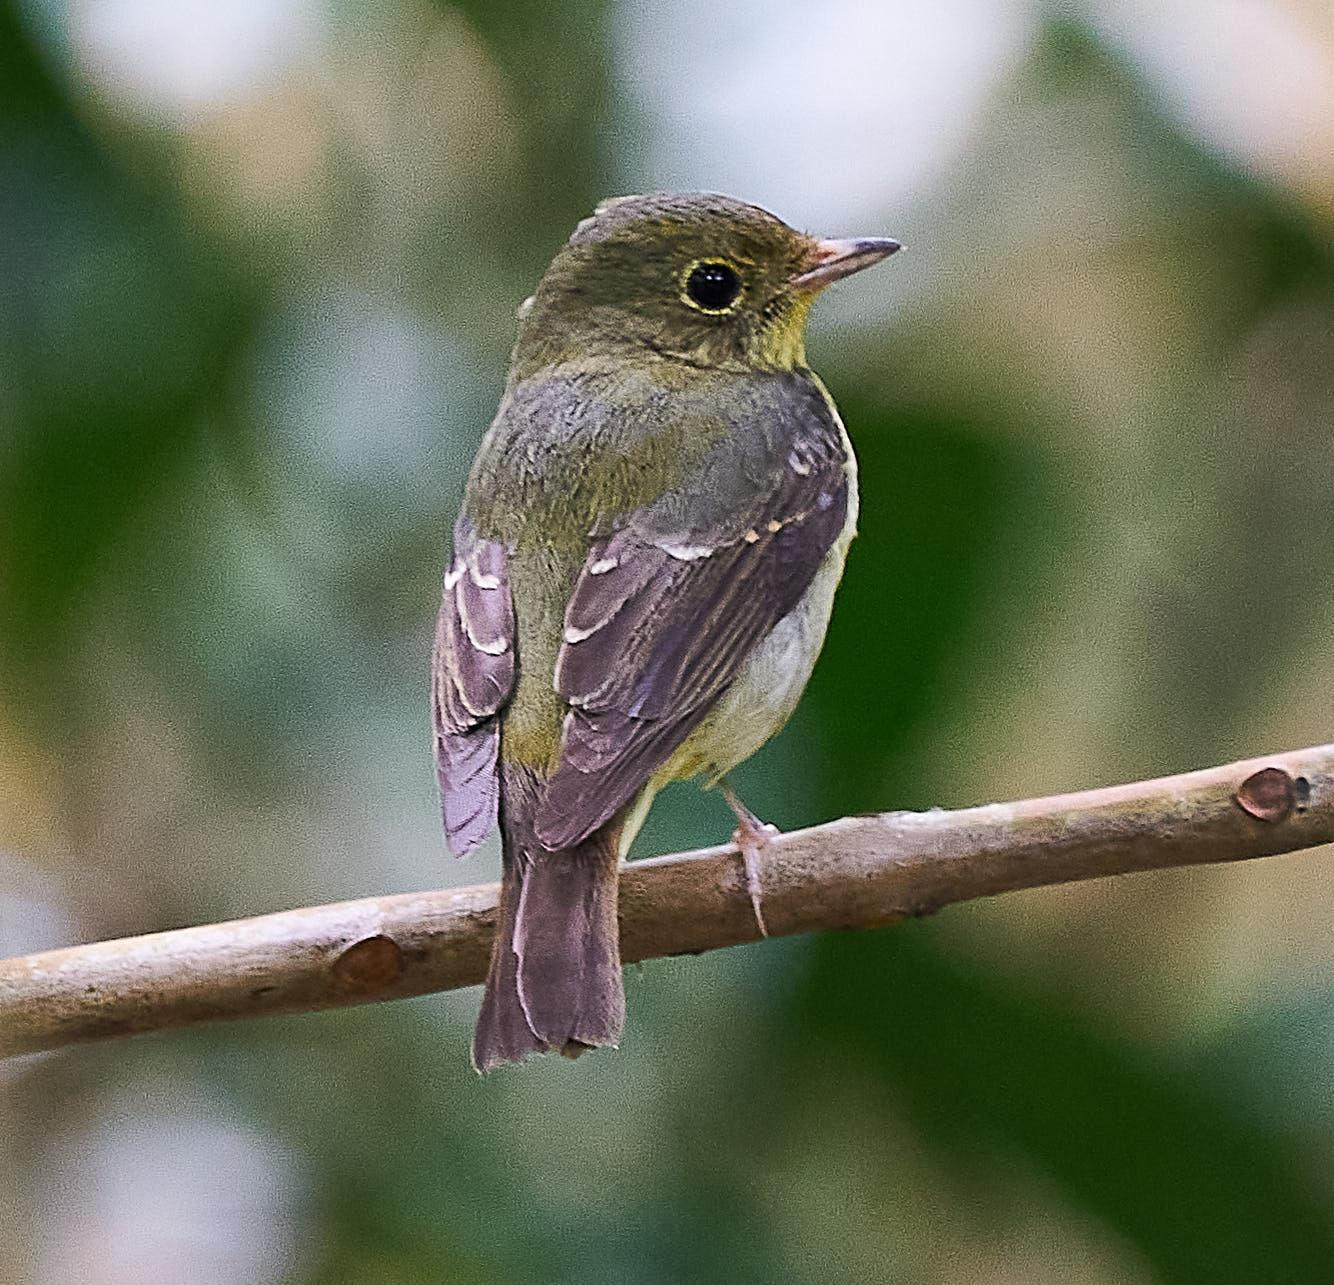 Green-backed Flycatcher Photo by Steven Cheong